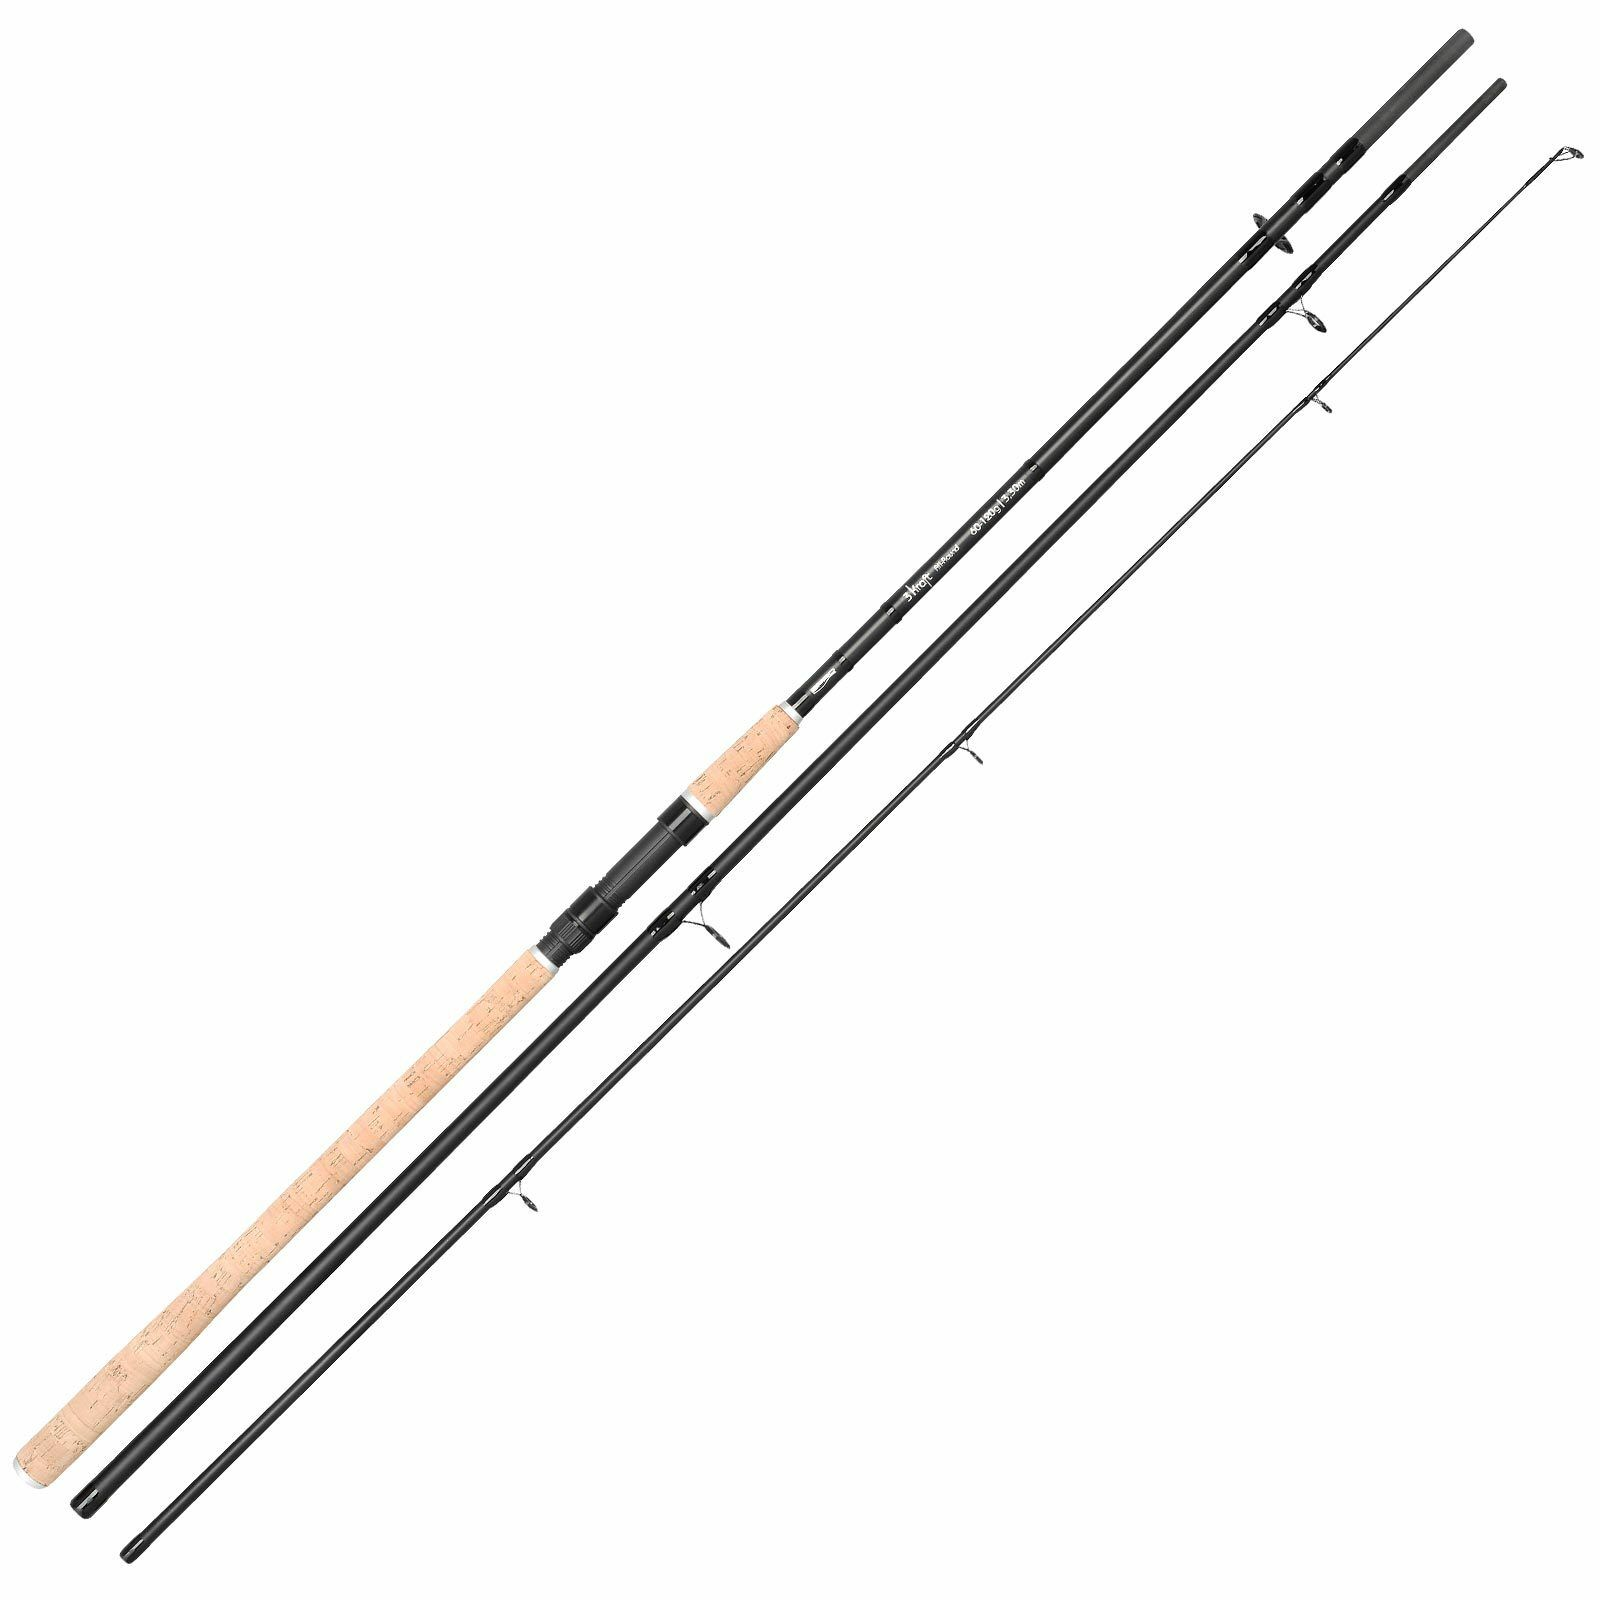 SPRO Allround canne à pêche - 3 Force All-Round 3,00 m 60-120 G